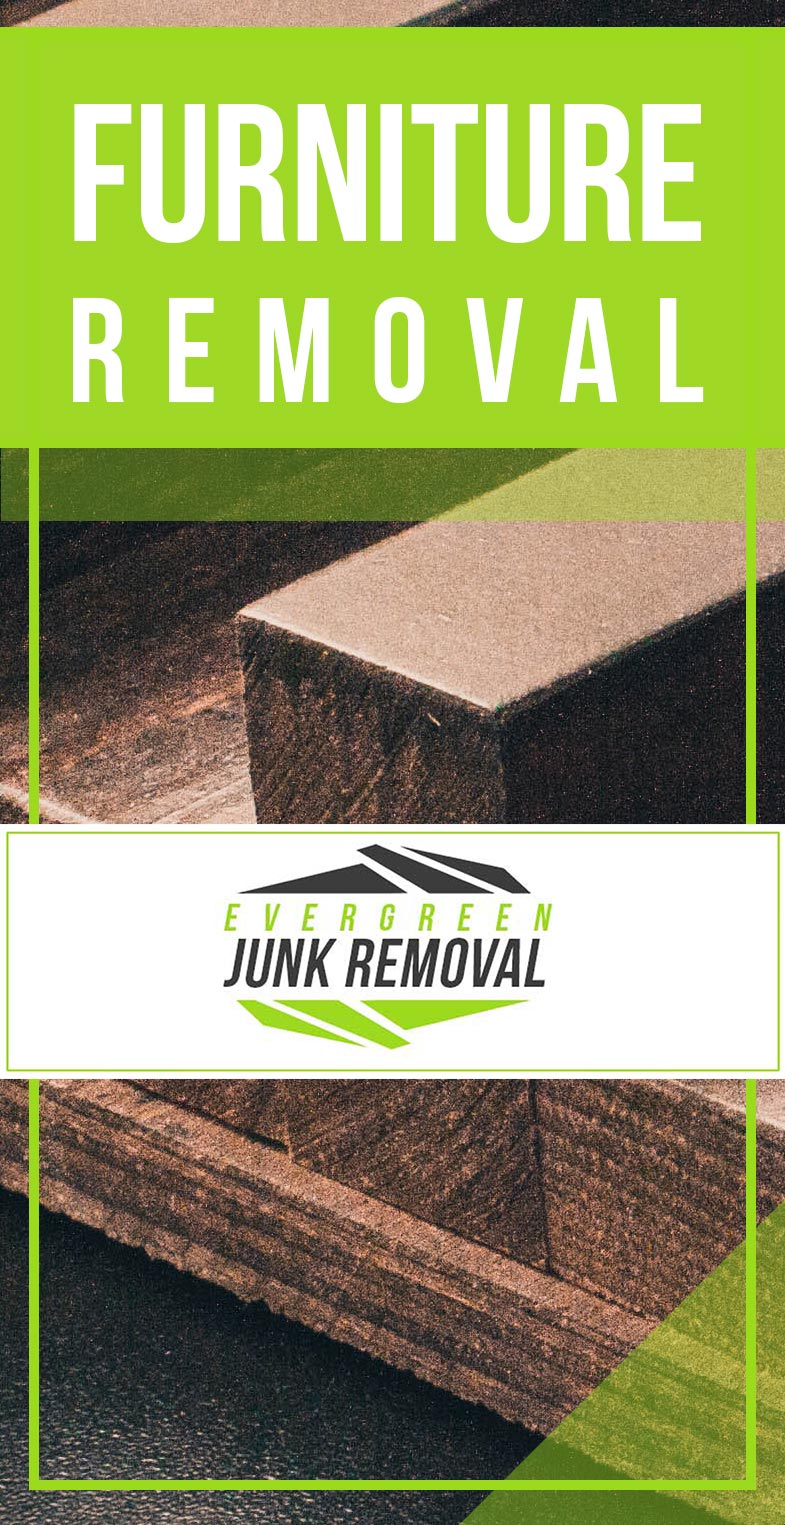 American Canyon Furniture Removal